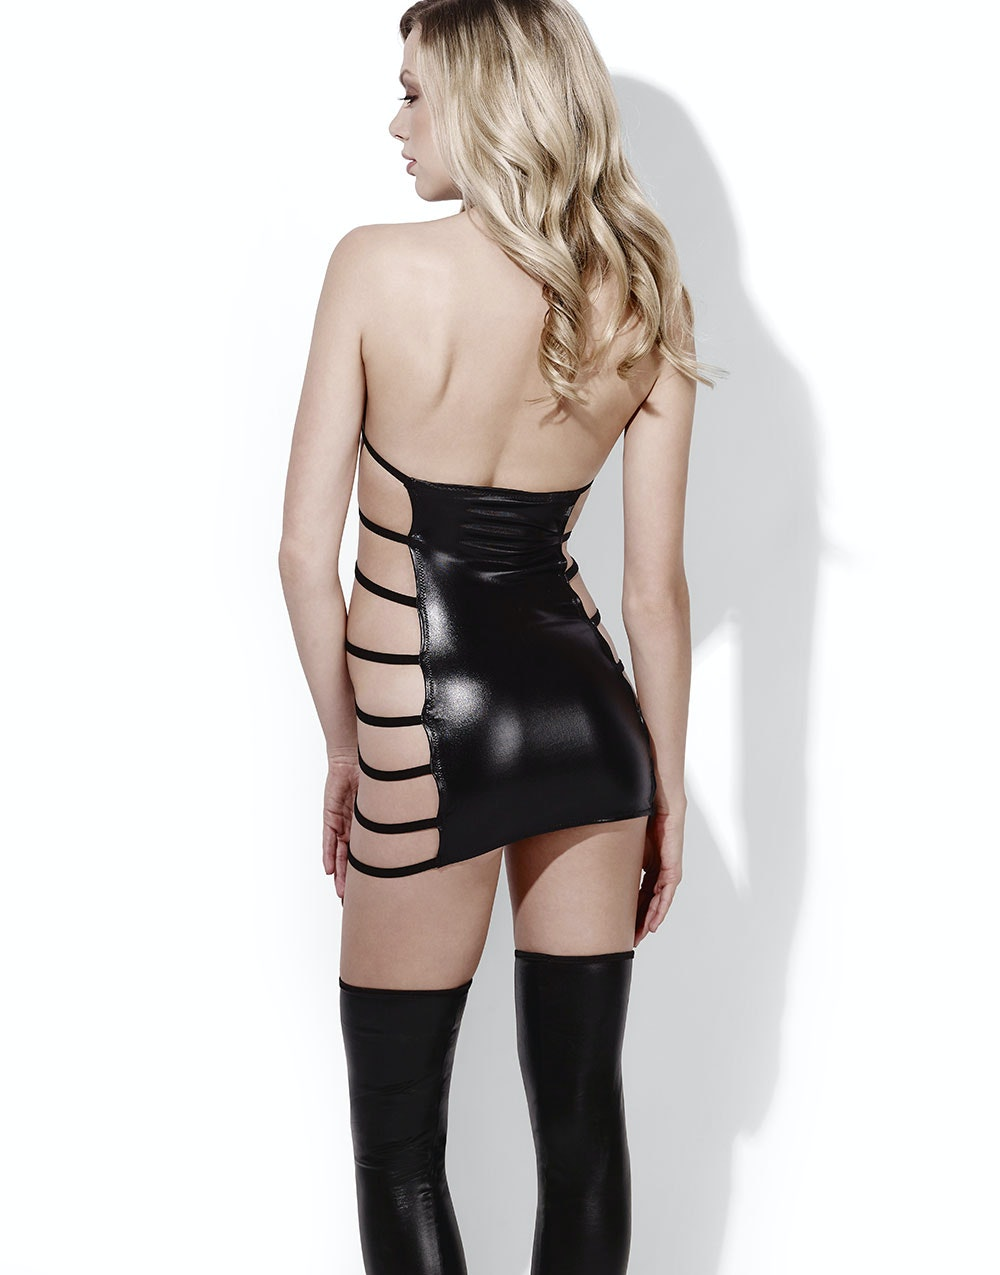 sexnoveller norsk sexy bondage